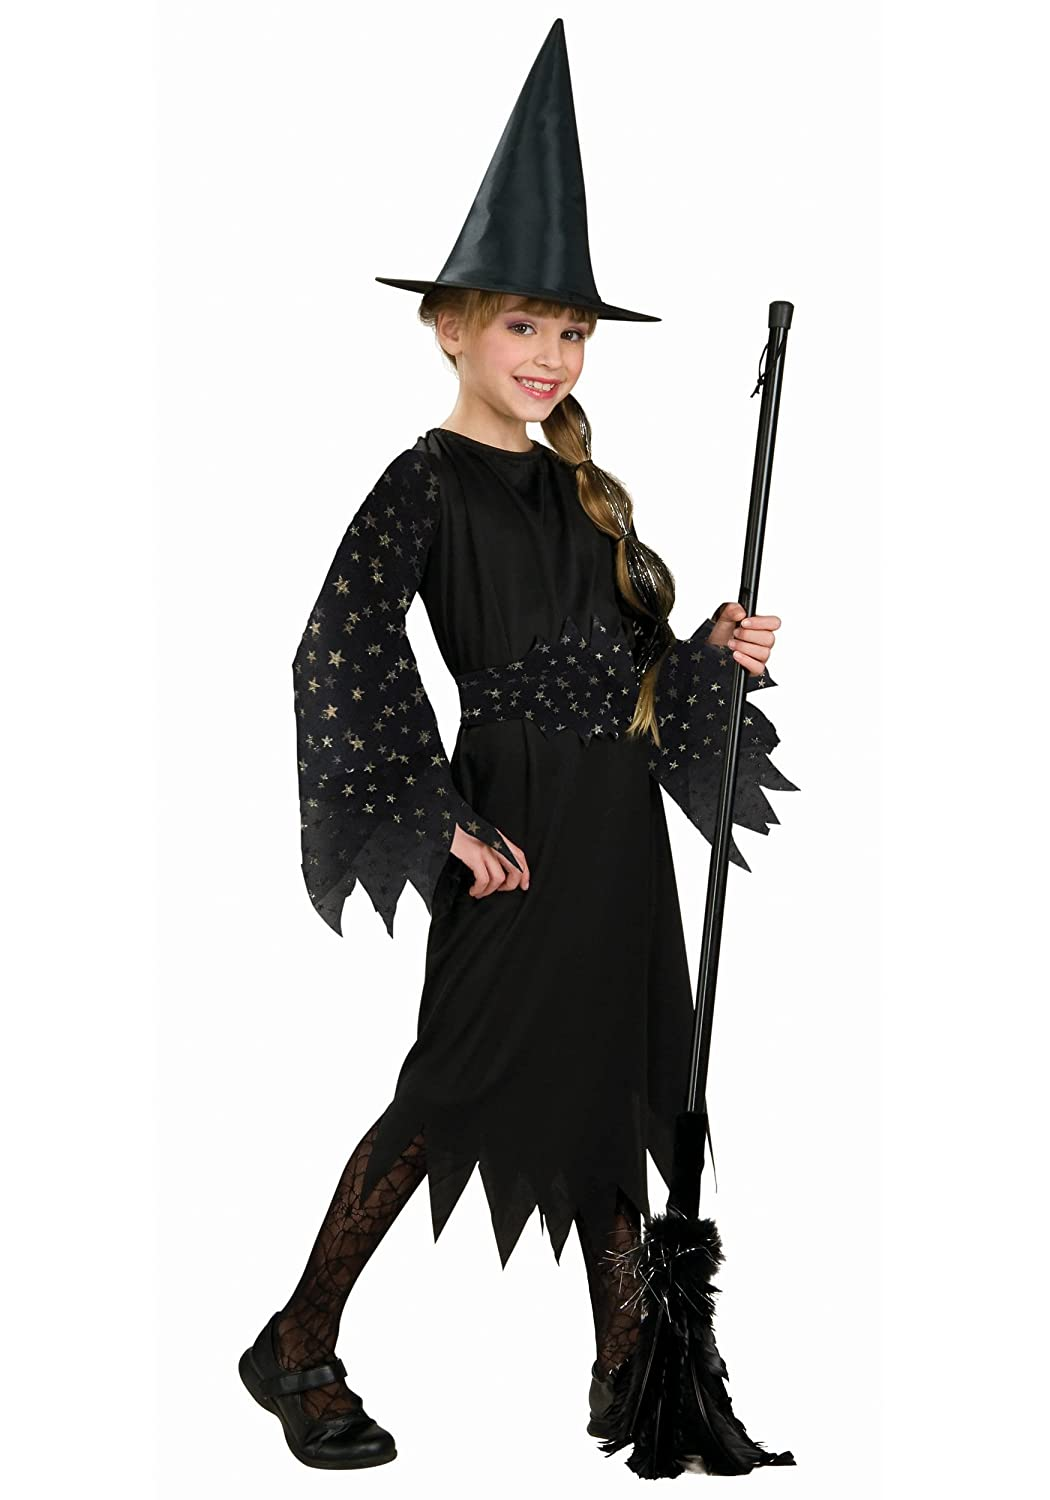 amazoncom halloween concepts childs witch costume with flocked velvet spider web fabric small toys games